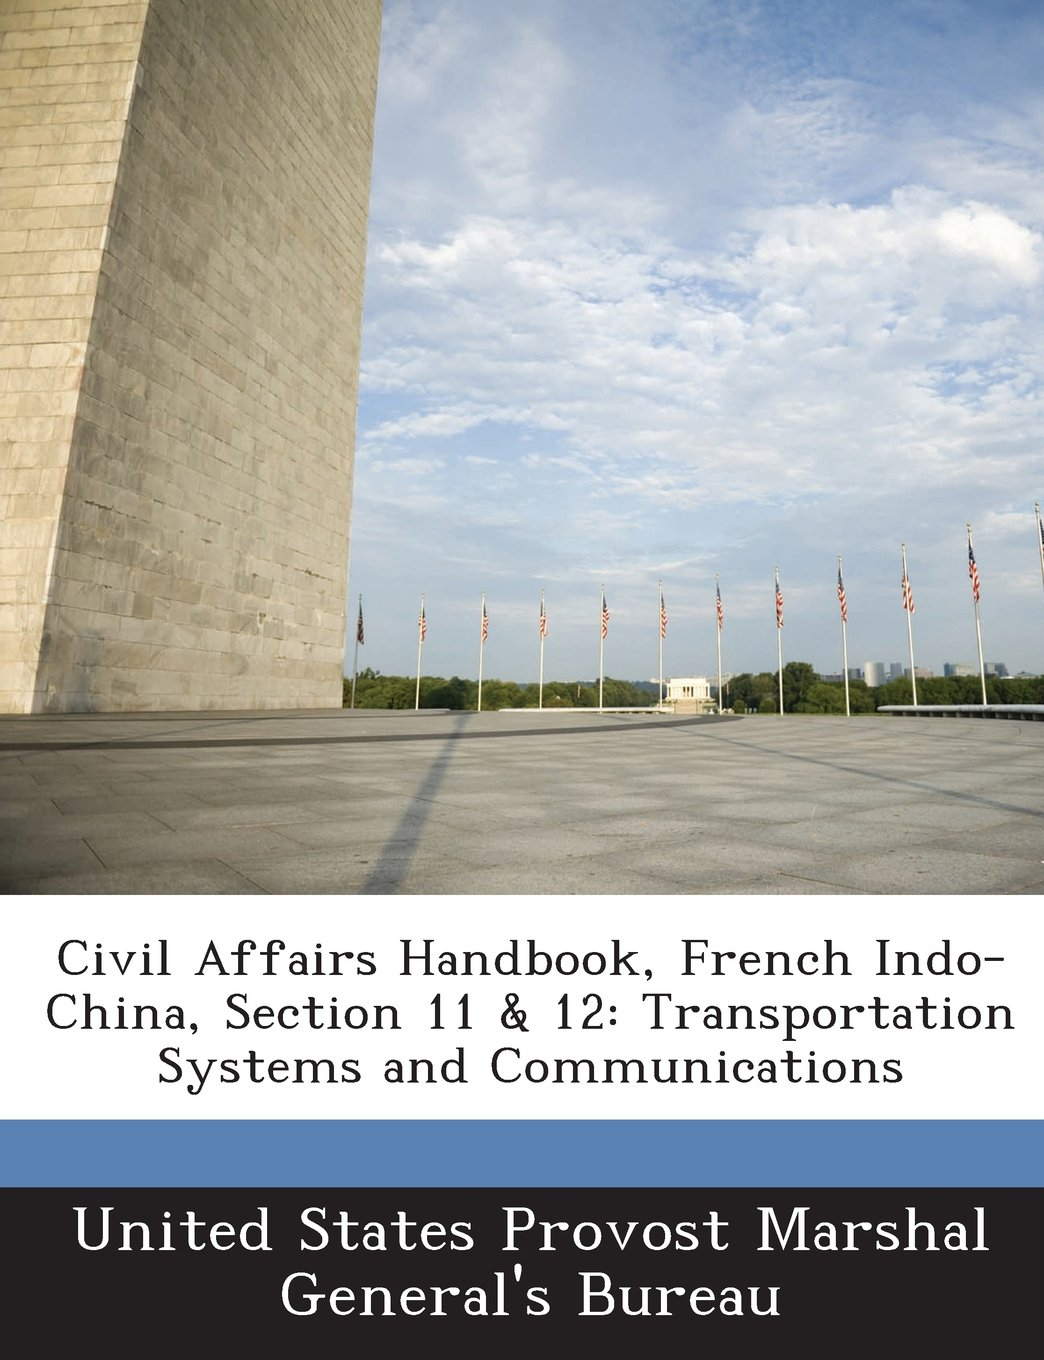 Civil Affairs Handbook, French Indo-China, Section 11 & 12: Transportation Systems and Communications ebook